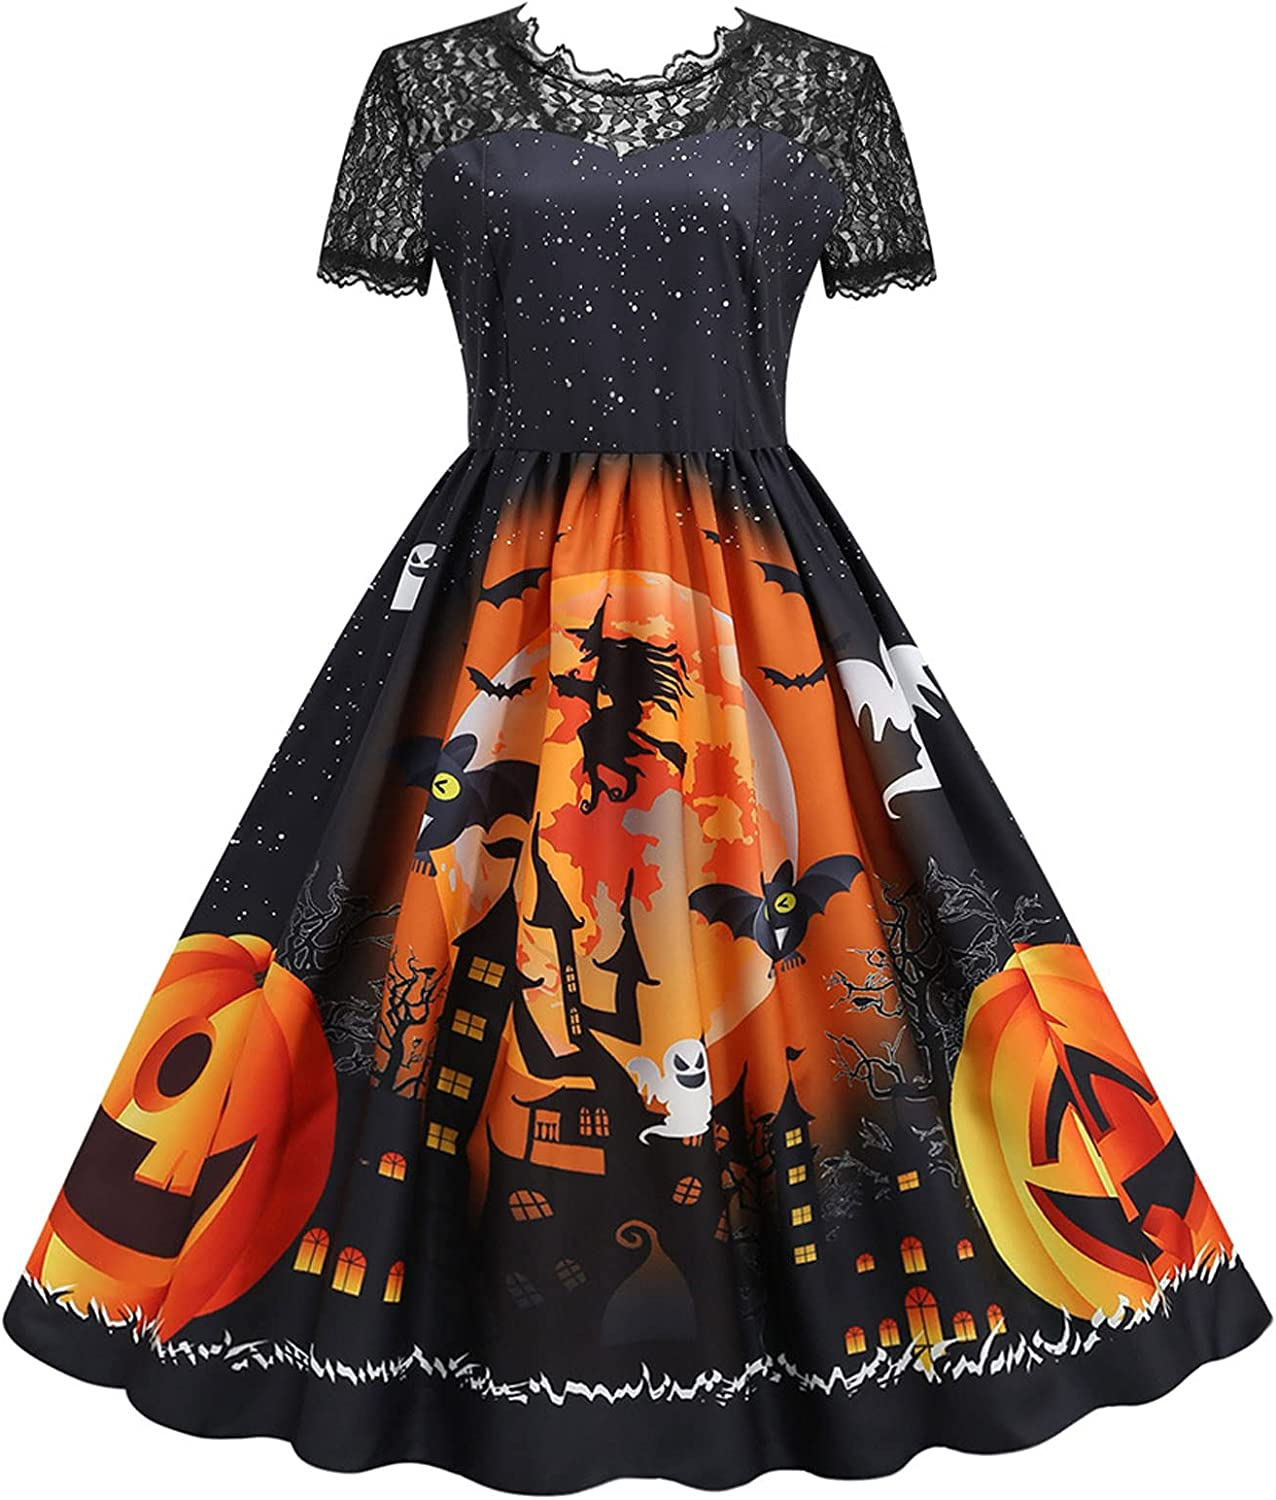 Halloween OFFicial store Dresses 2021 Women Vintage Housewife Long Sleeve Shipping included 50s